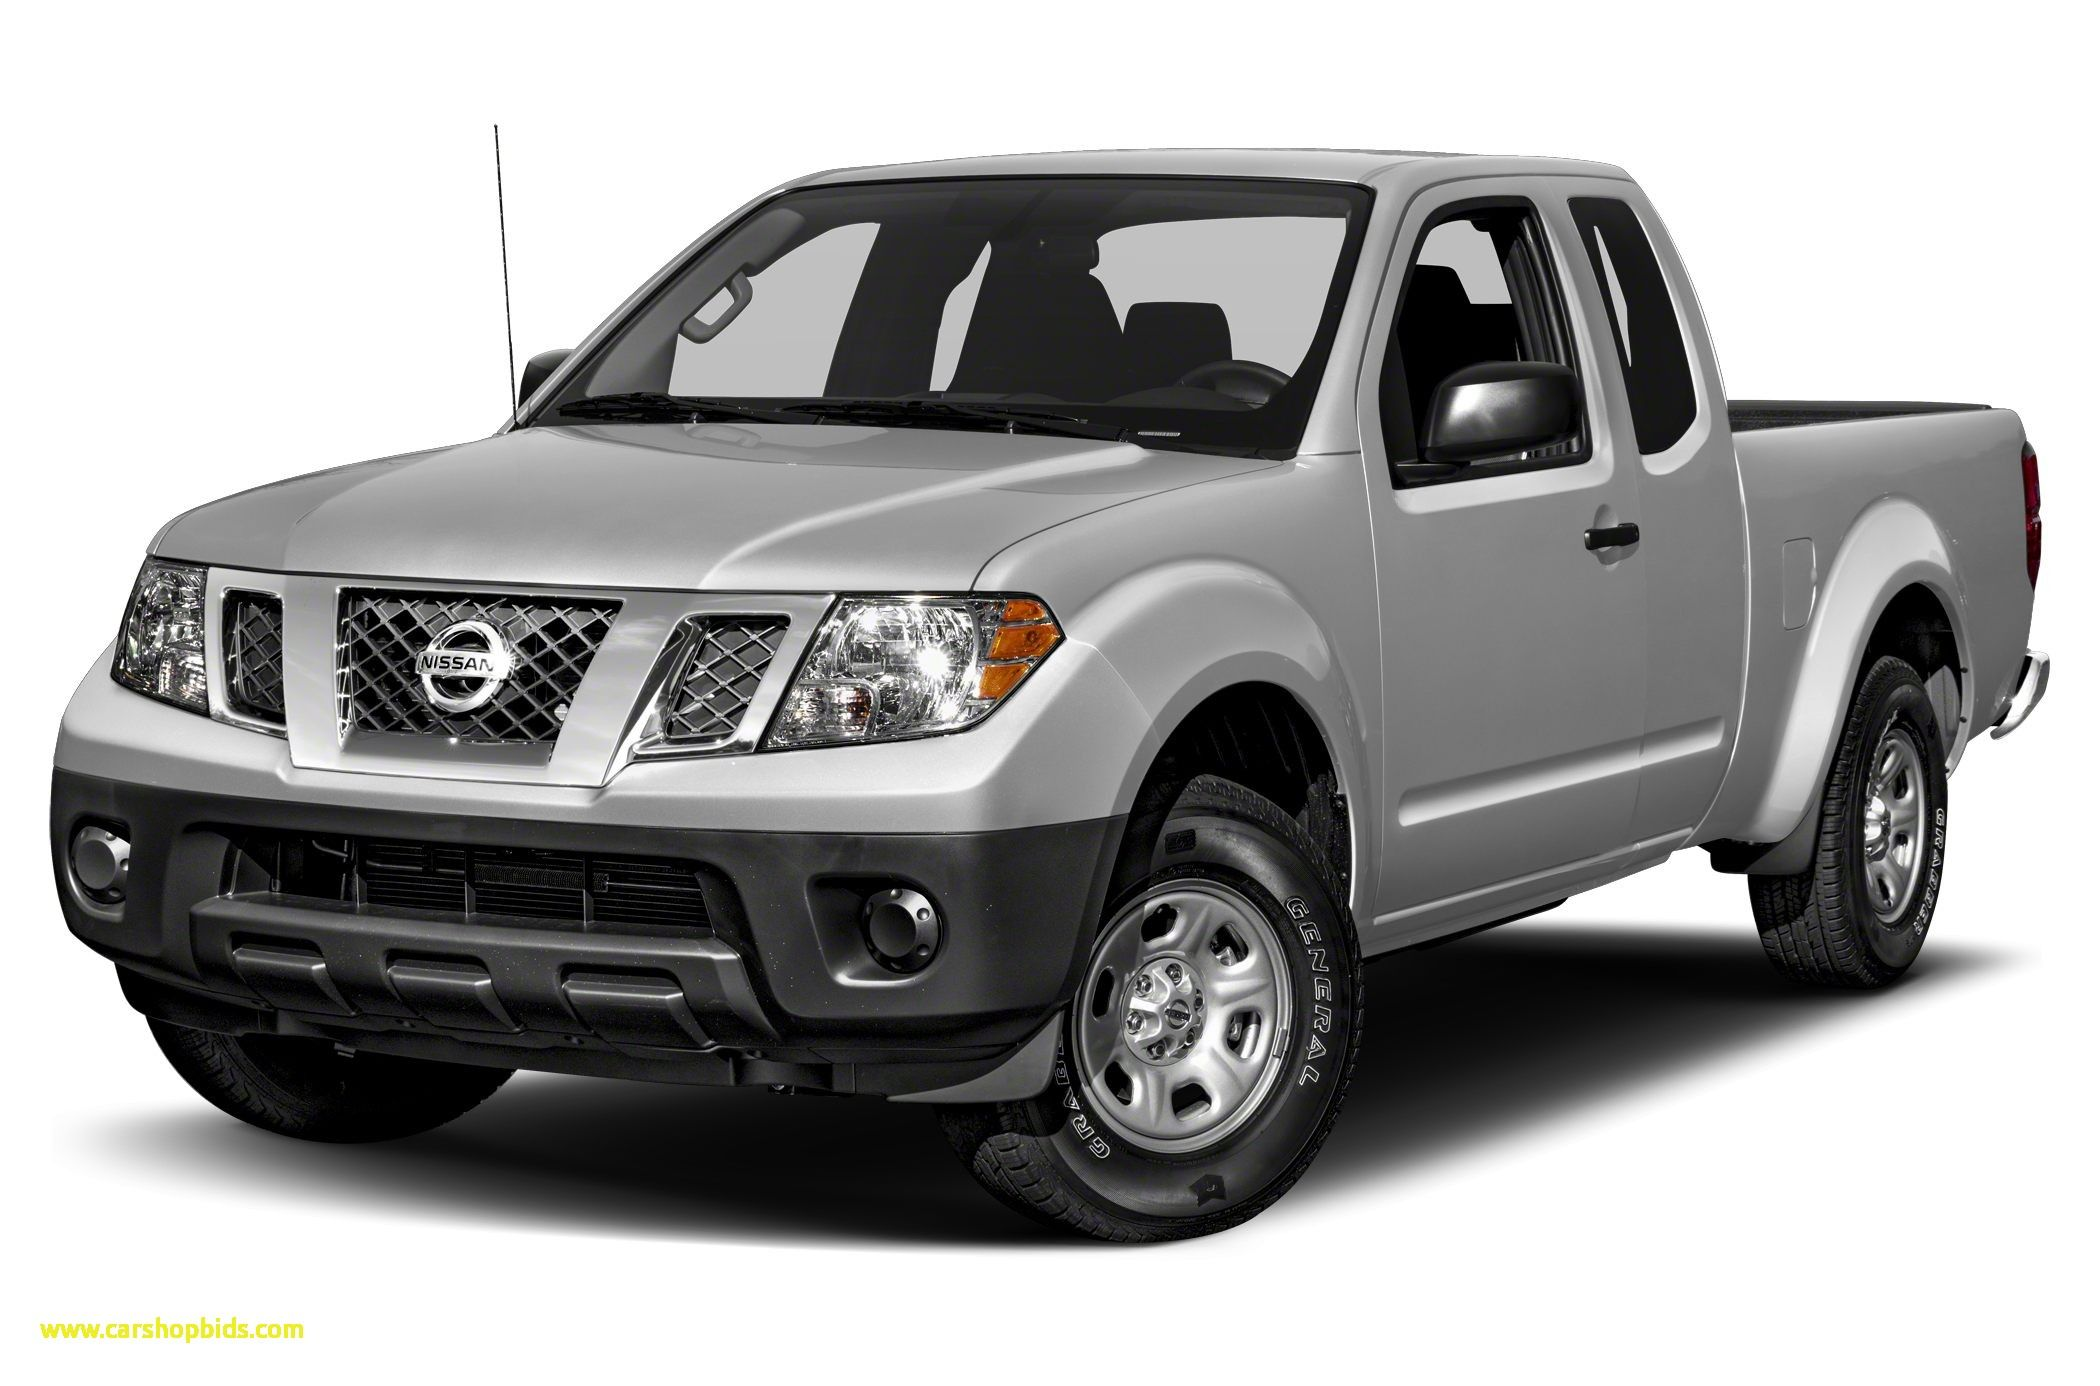 2017 Nissan Frontier Sv Automatic 4wd Crew Cab Short Box In 2020 Nissan Frontier Nissan Nissan Xtrail